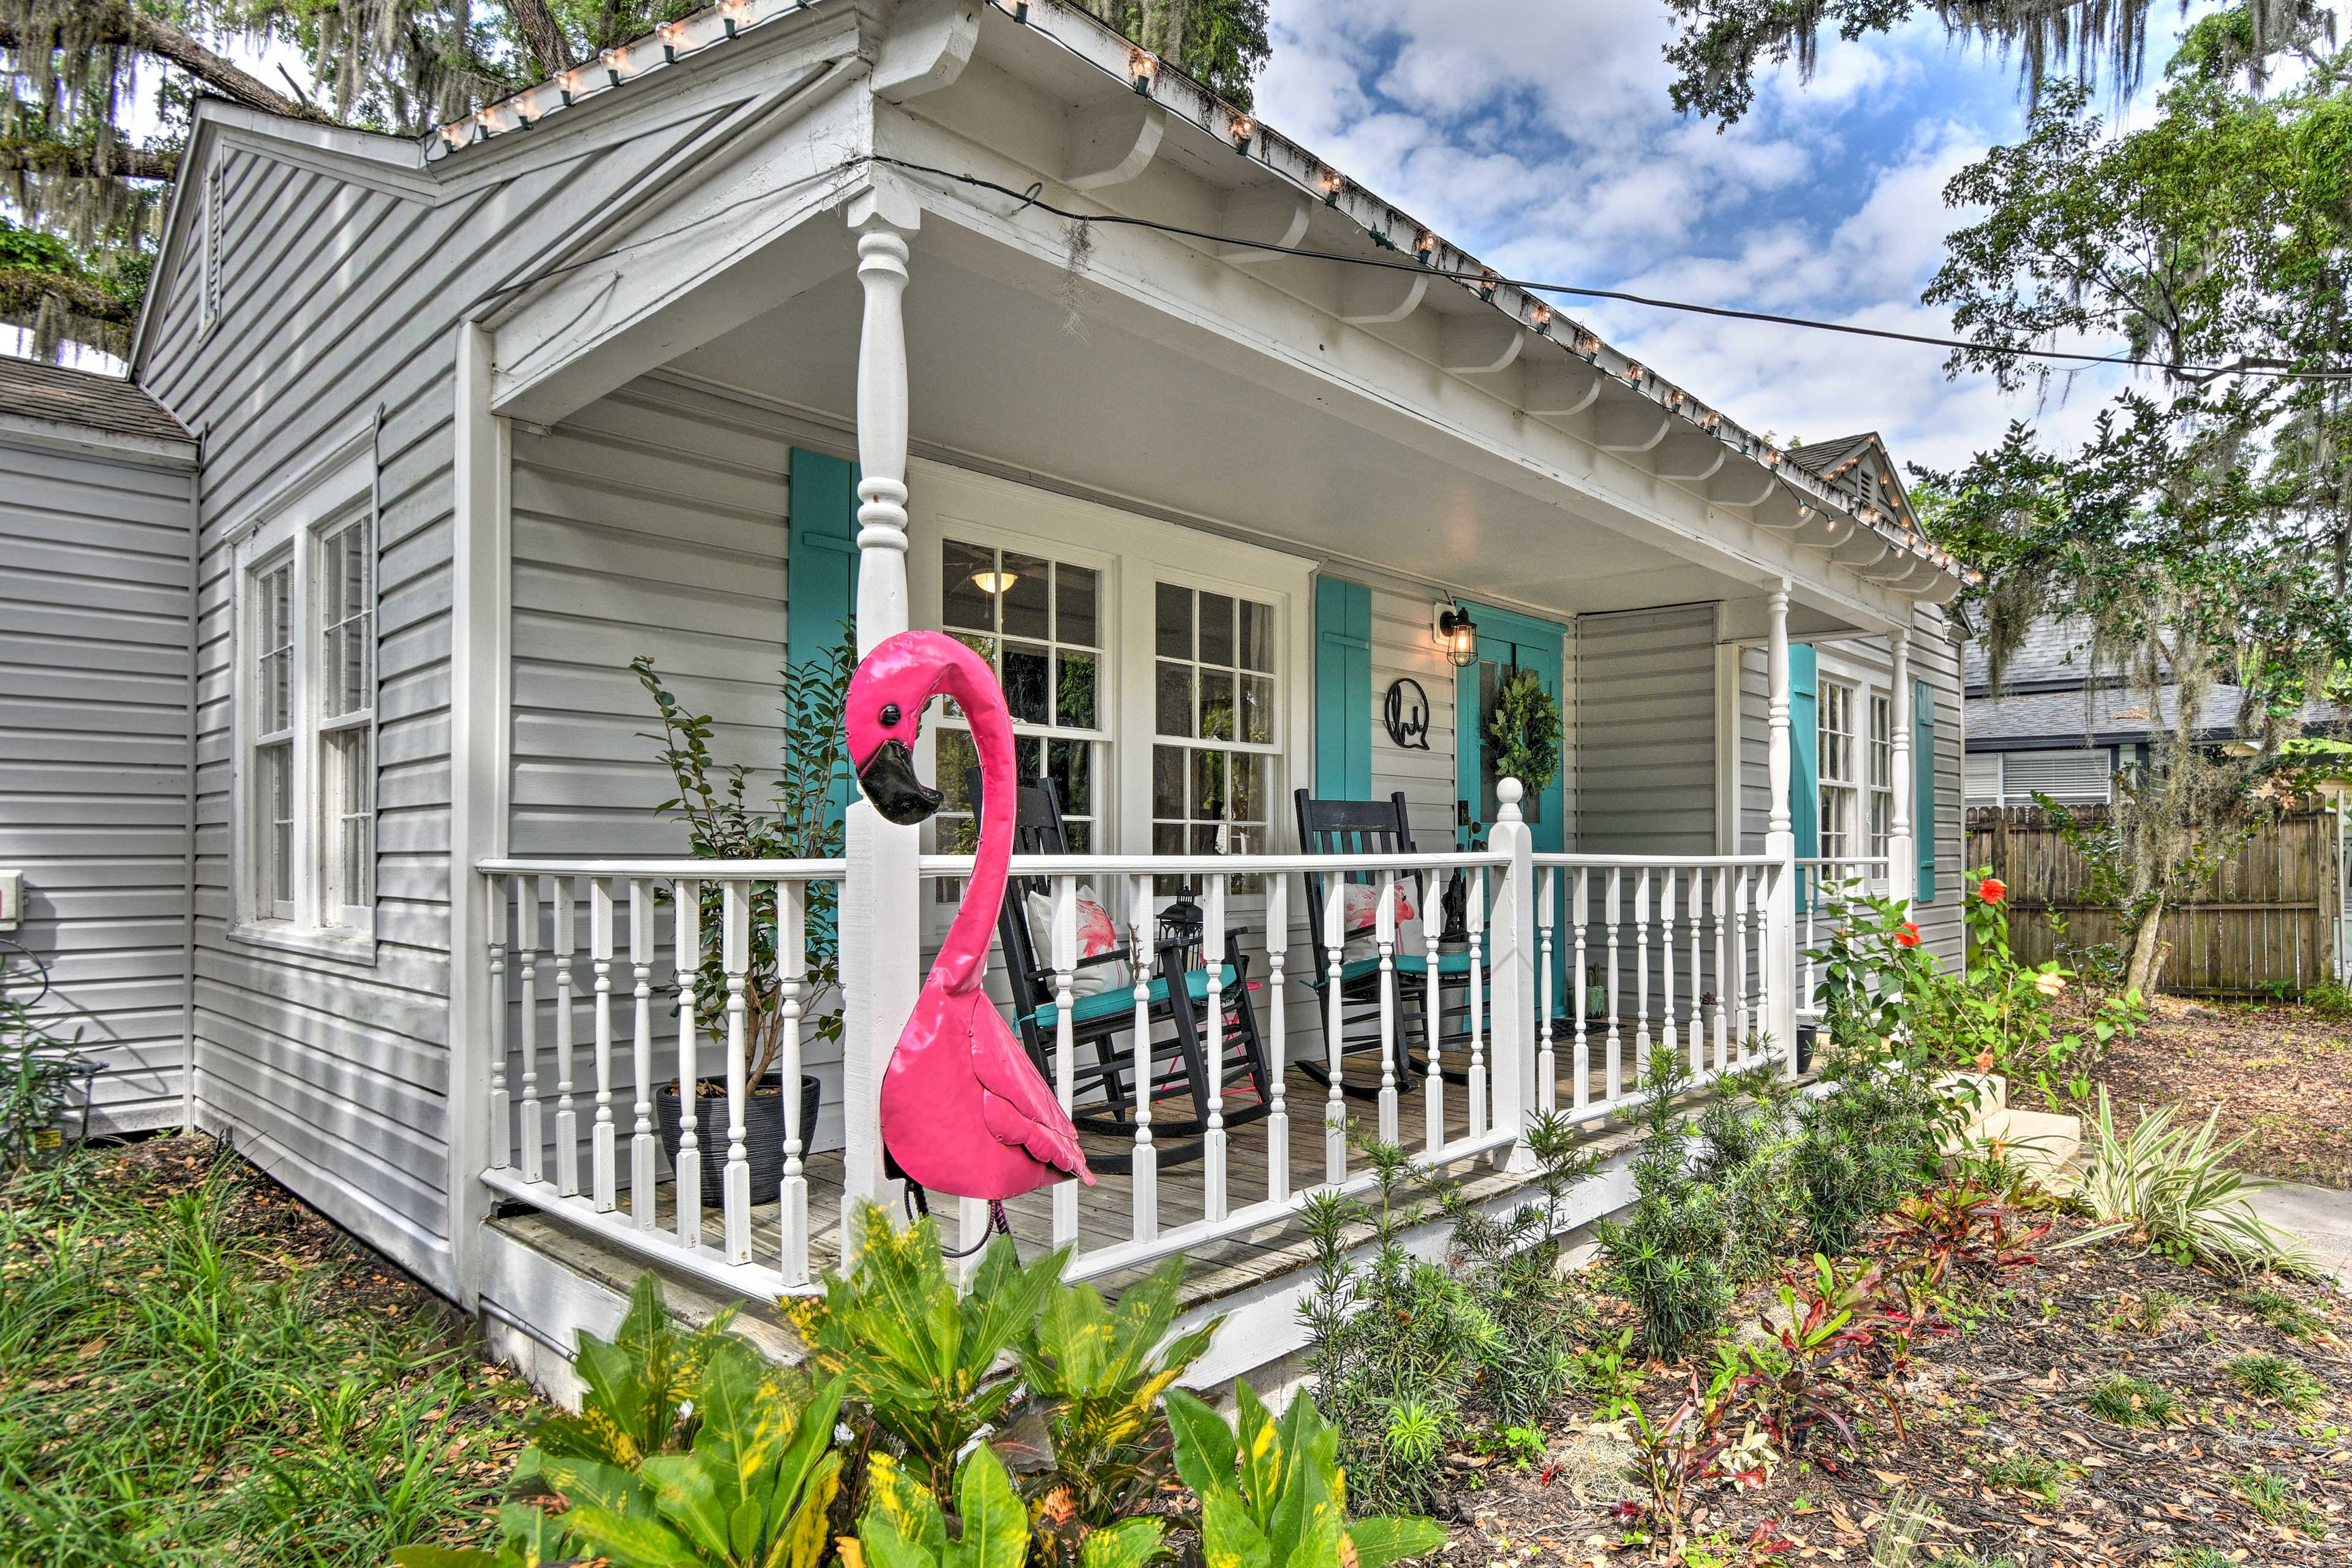 A memorable stay awaits you at this cozy cottage.